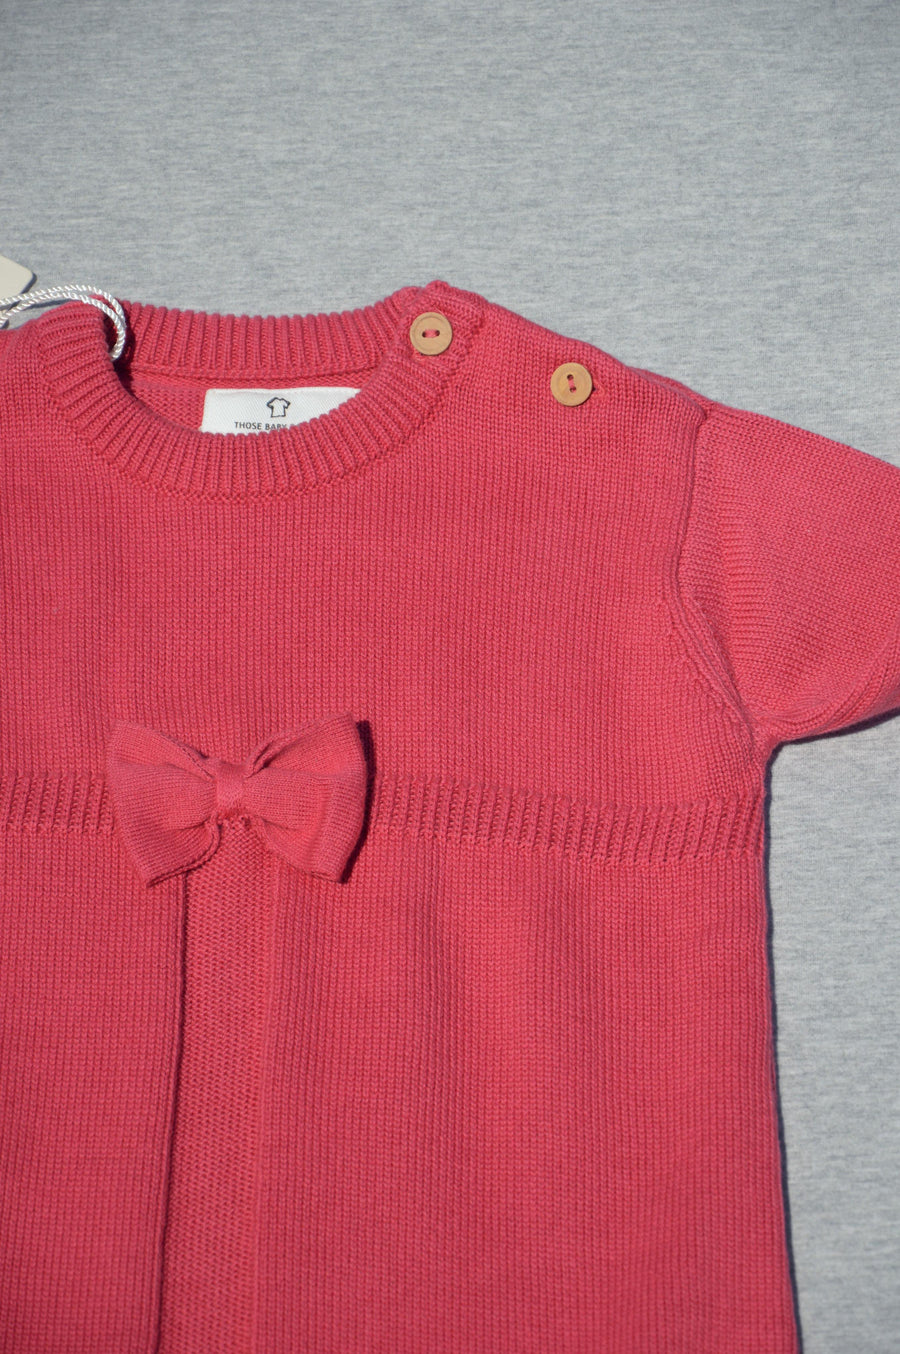 Those Baby Basics - brand new - pink knit dress, size 4-5